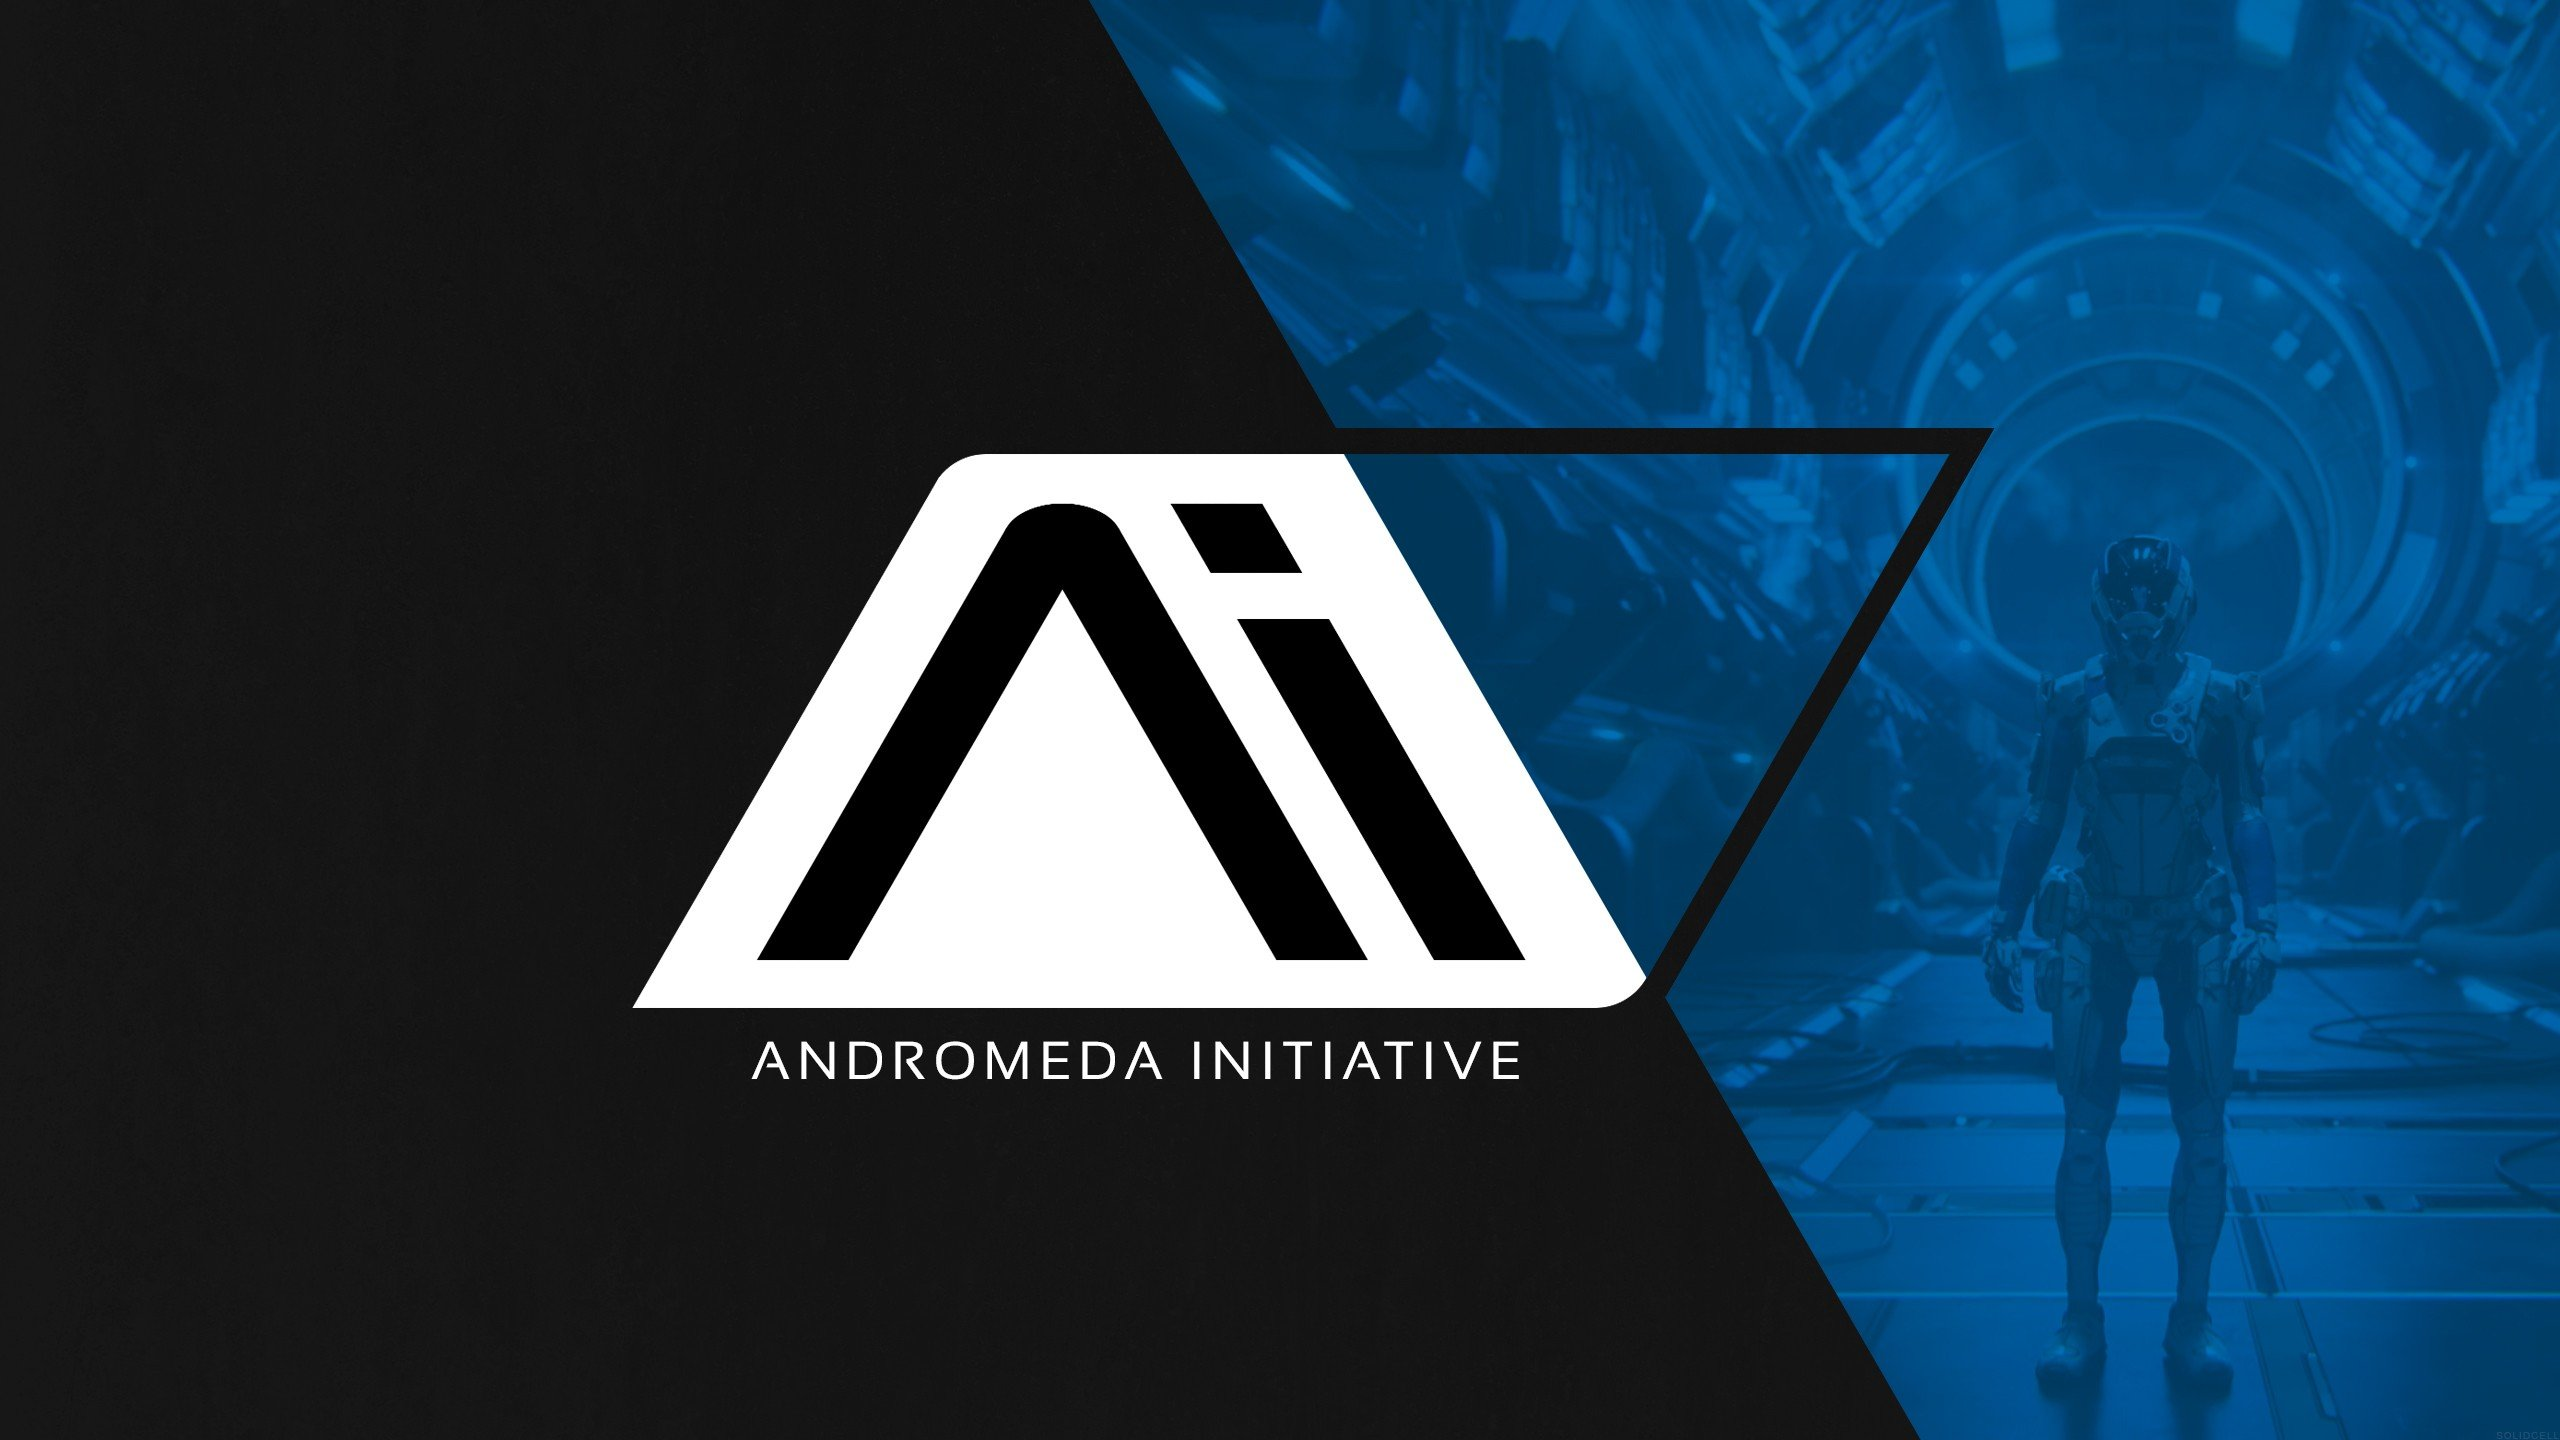 Mass Effect Andromeda Andromeda Initiative Hd Wallpapers